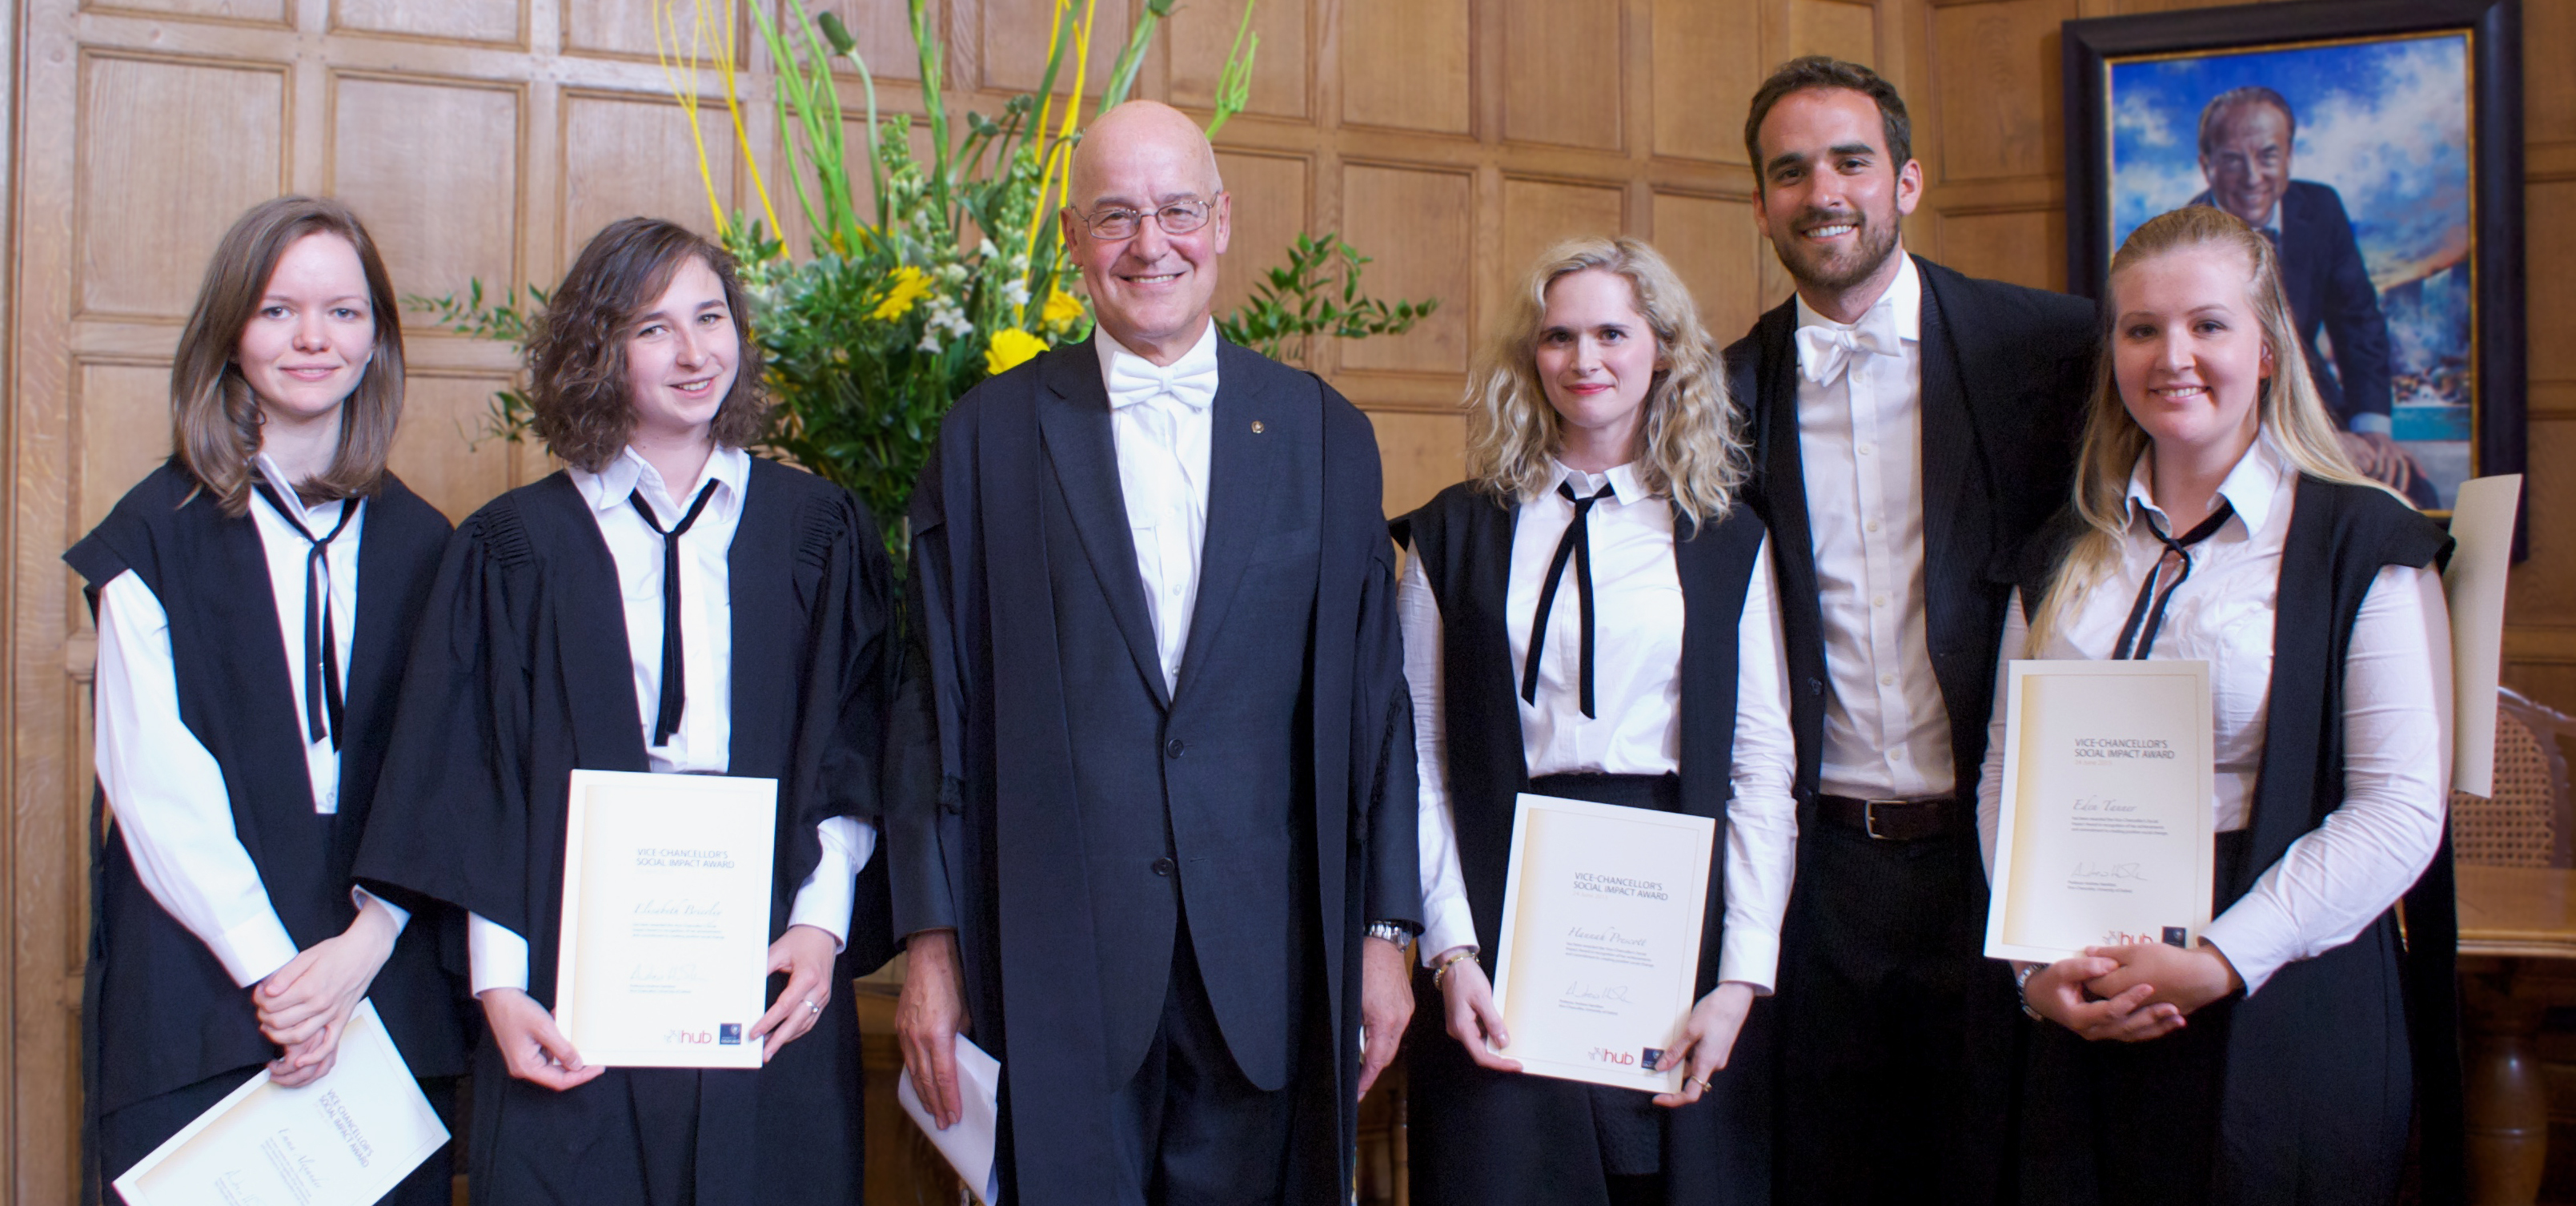 Five Oxford students receive Vice-Chancellor's Social Impact Awards